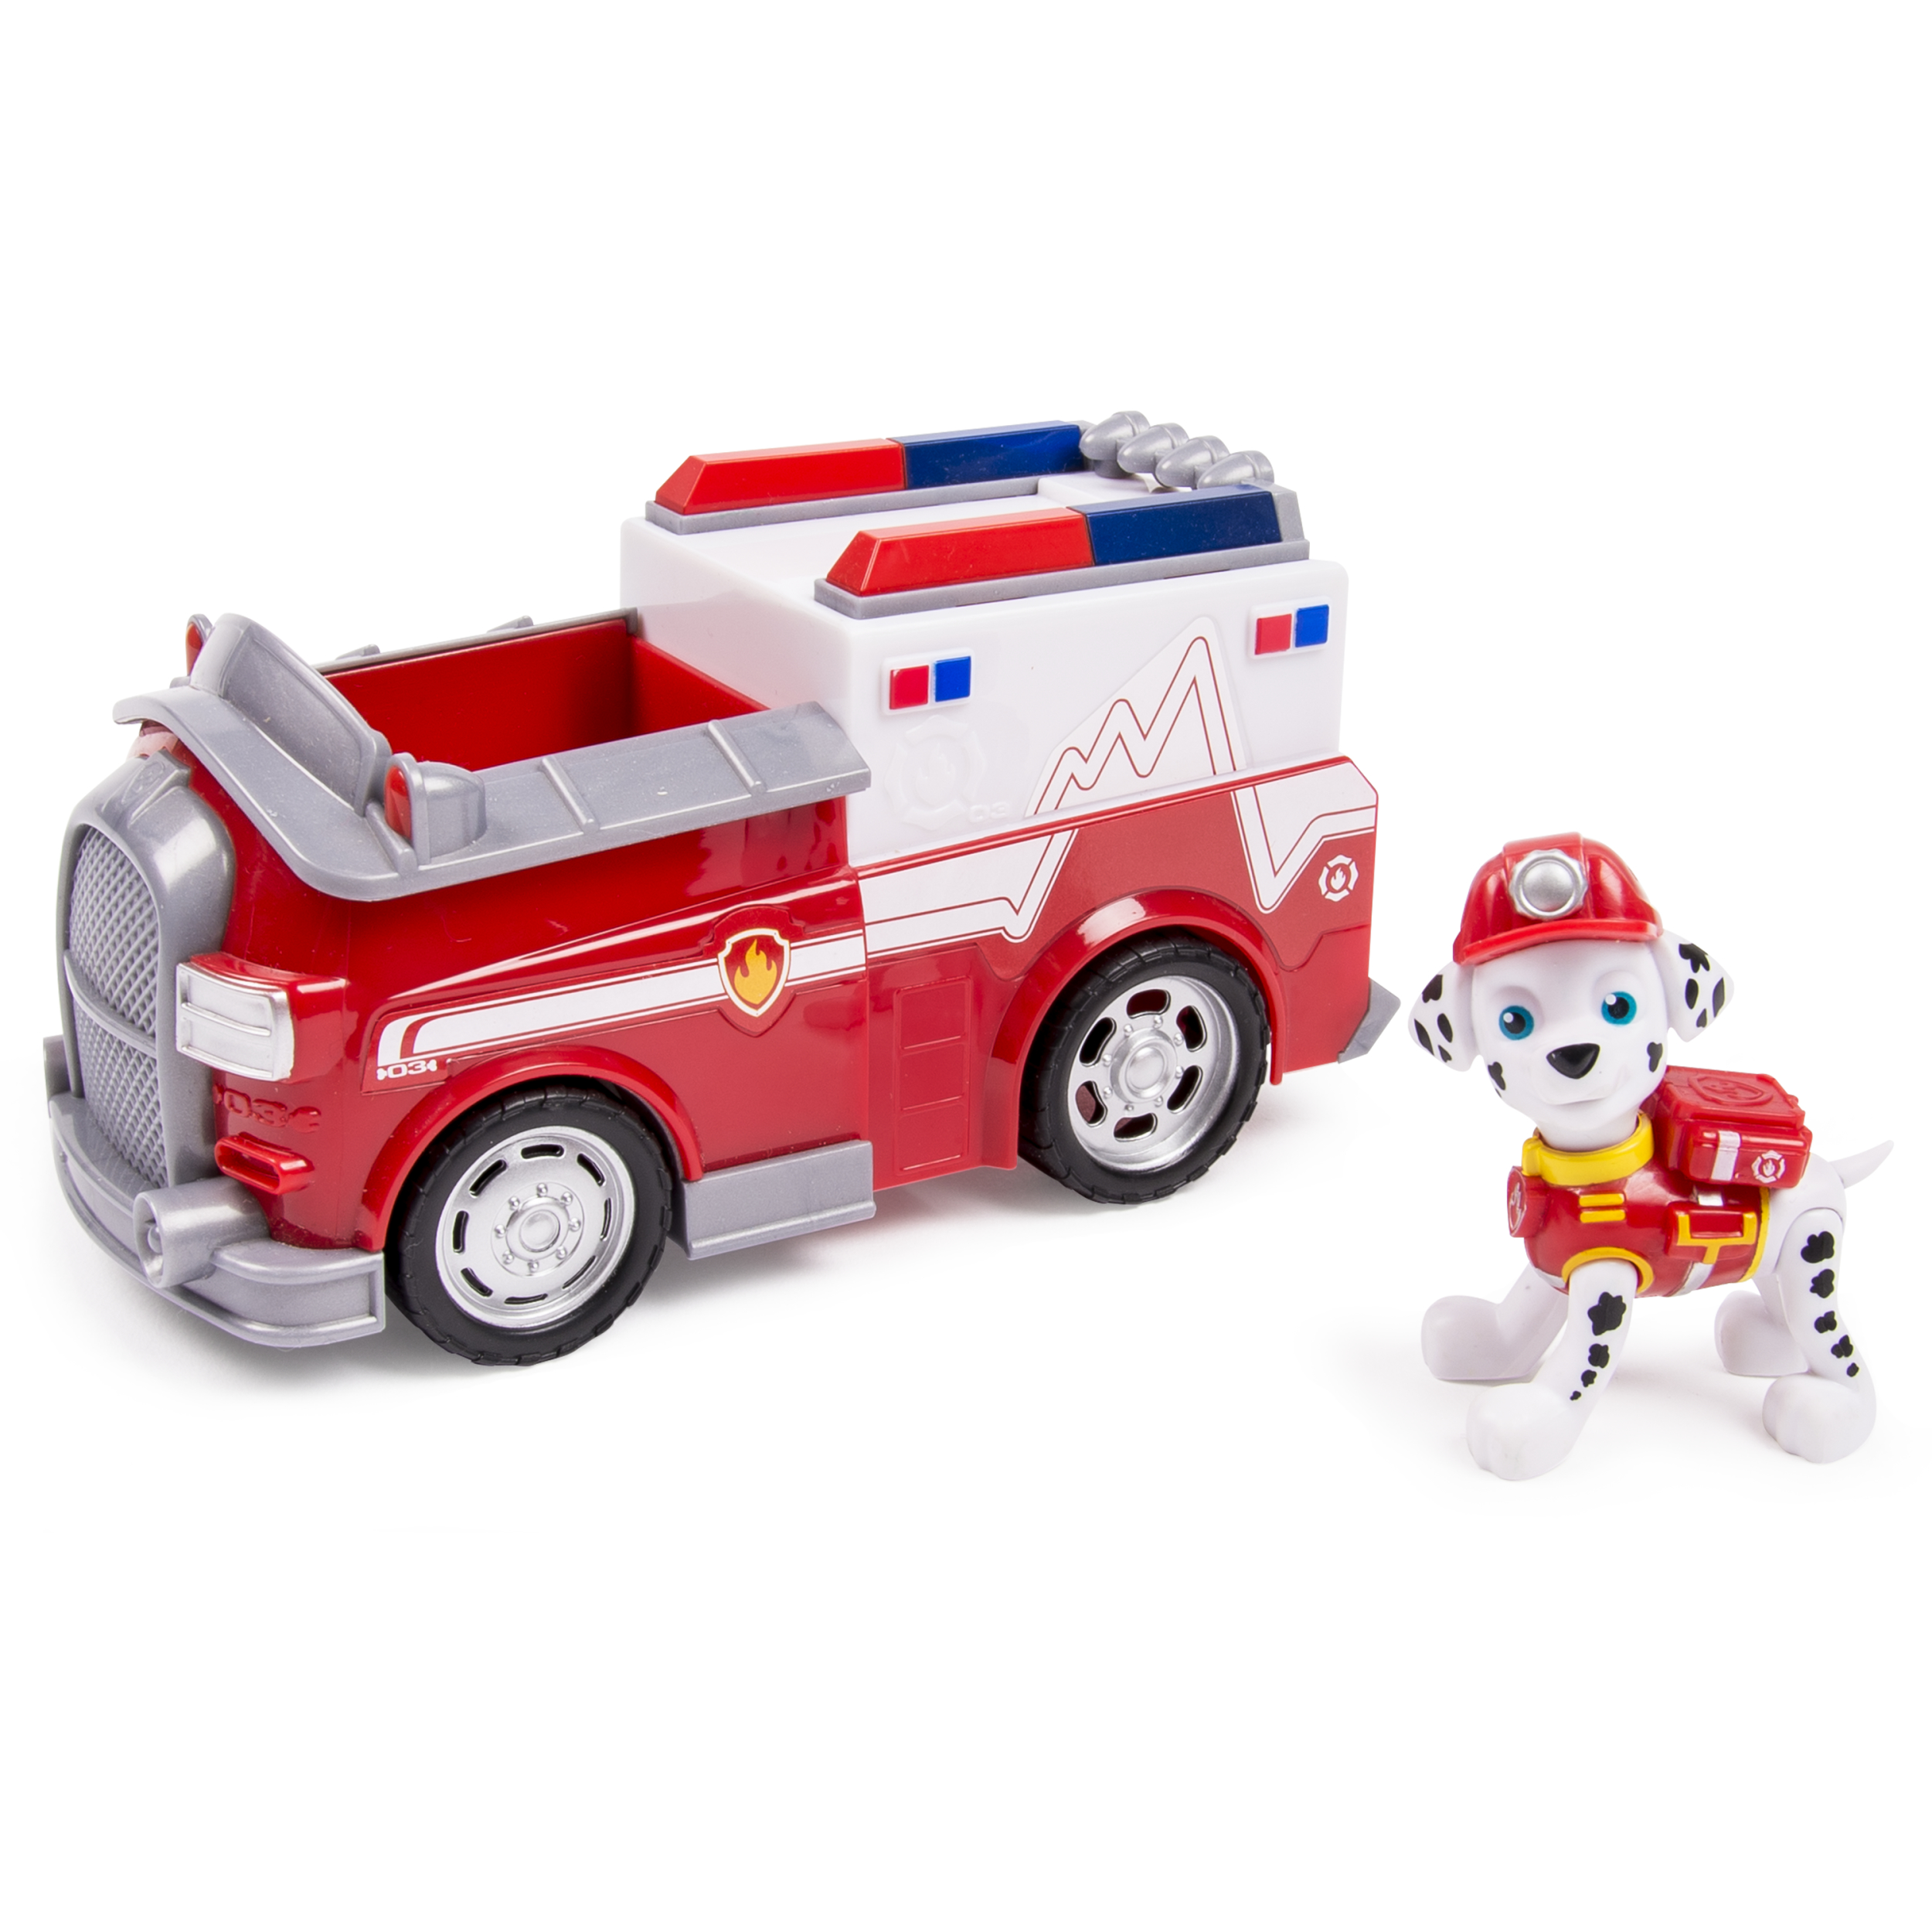 Paw Patrol Marshall's EMT Ambulance, Vehicle and Figure